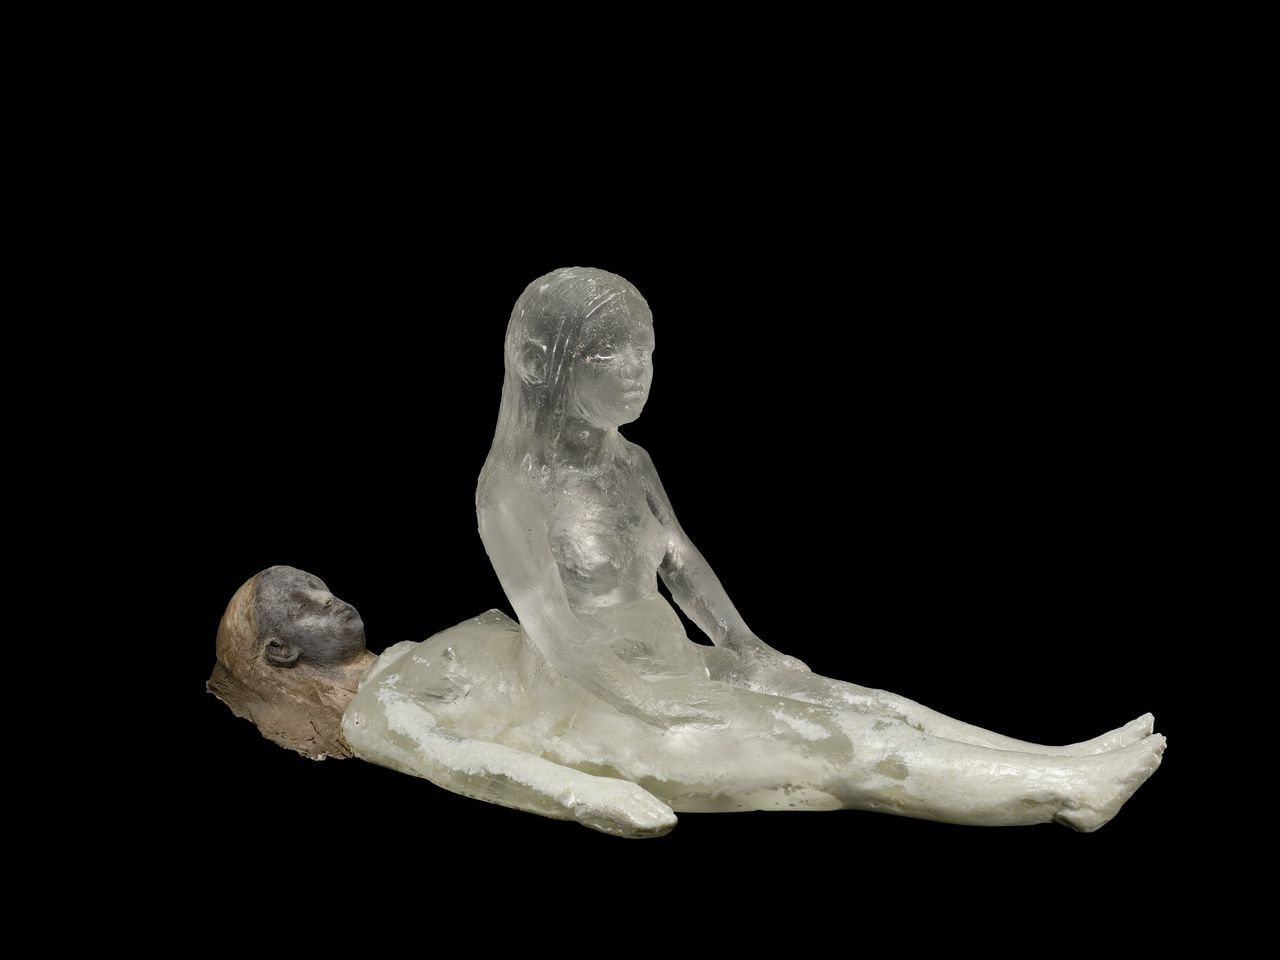 While You Are Sleeping by Christina Bothwell